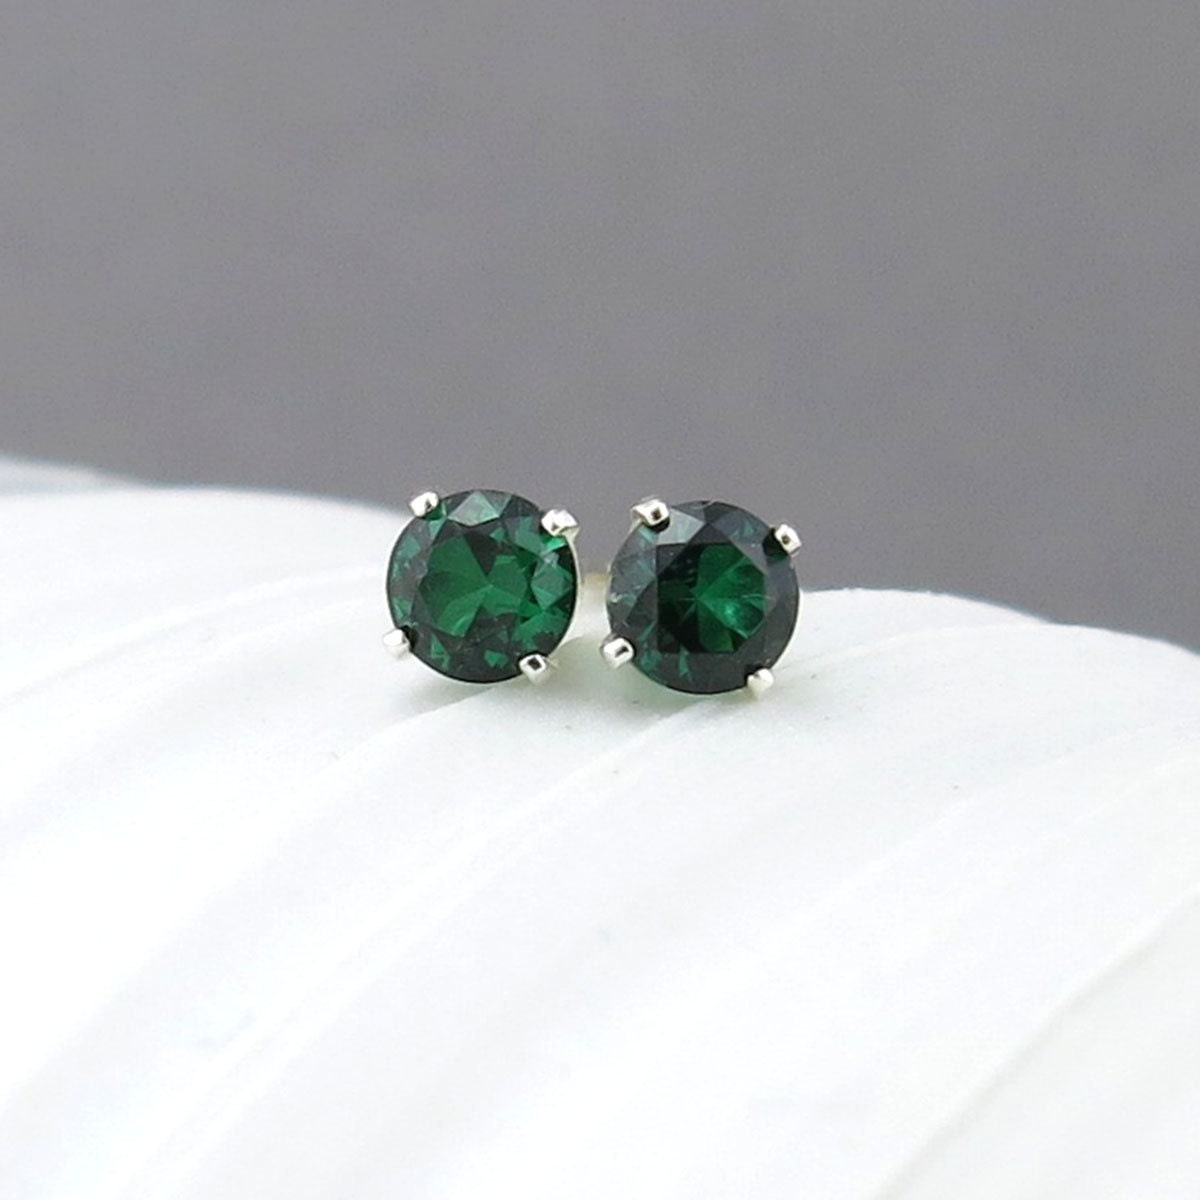 shop gemini latest birthstone my gemstone addition the etsy share to pin earrings excited